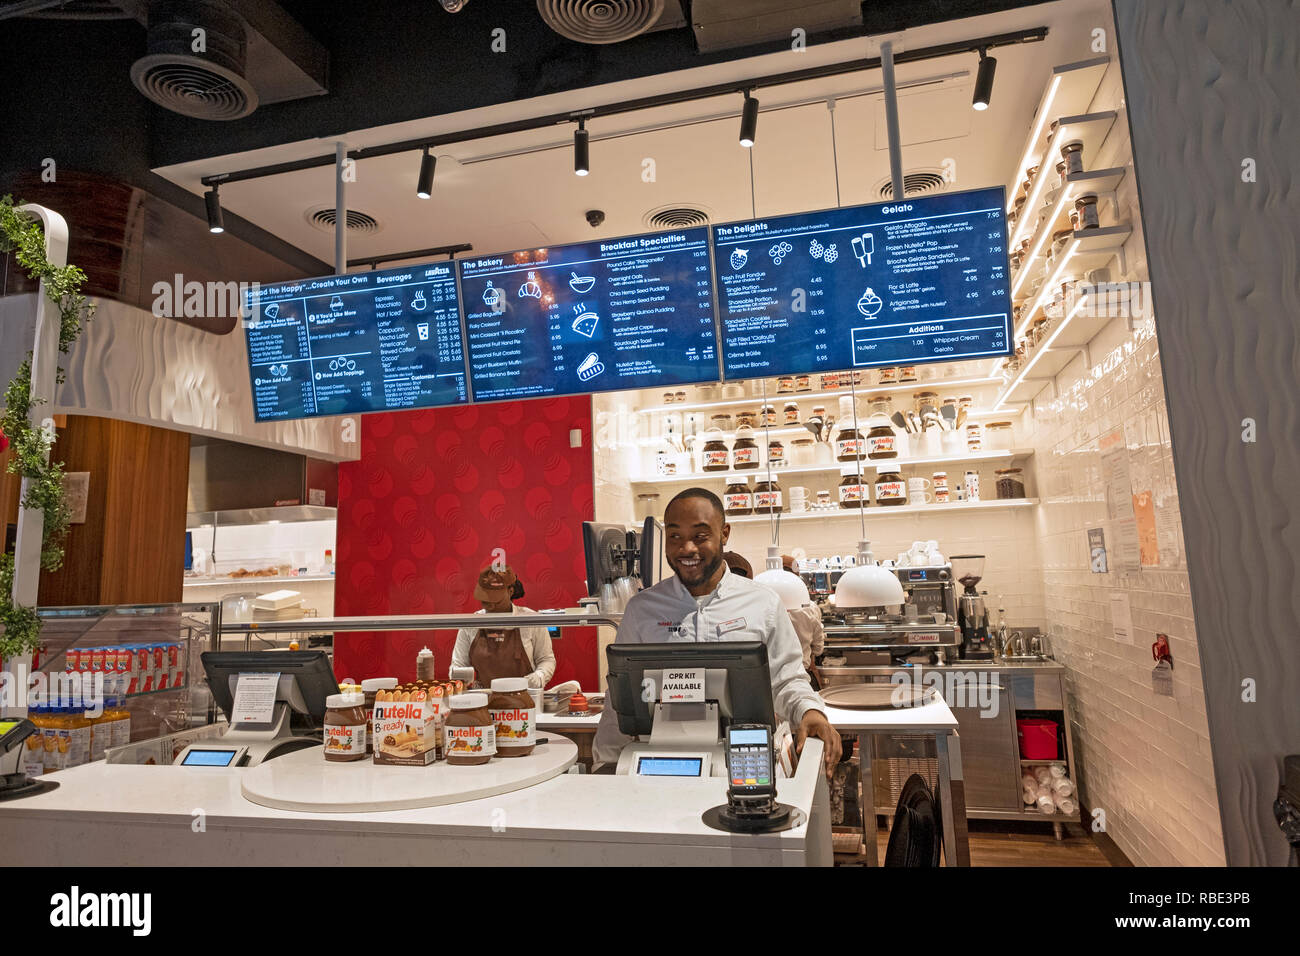 Inside the new NUTELLA CAFE on University Place near Union Square Park in lower Manhattan, New York City. Stock Photo